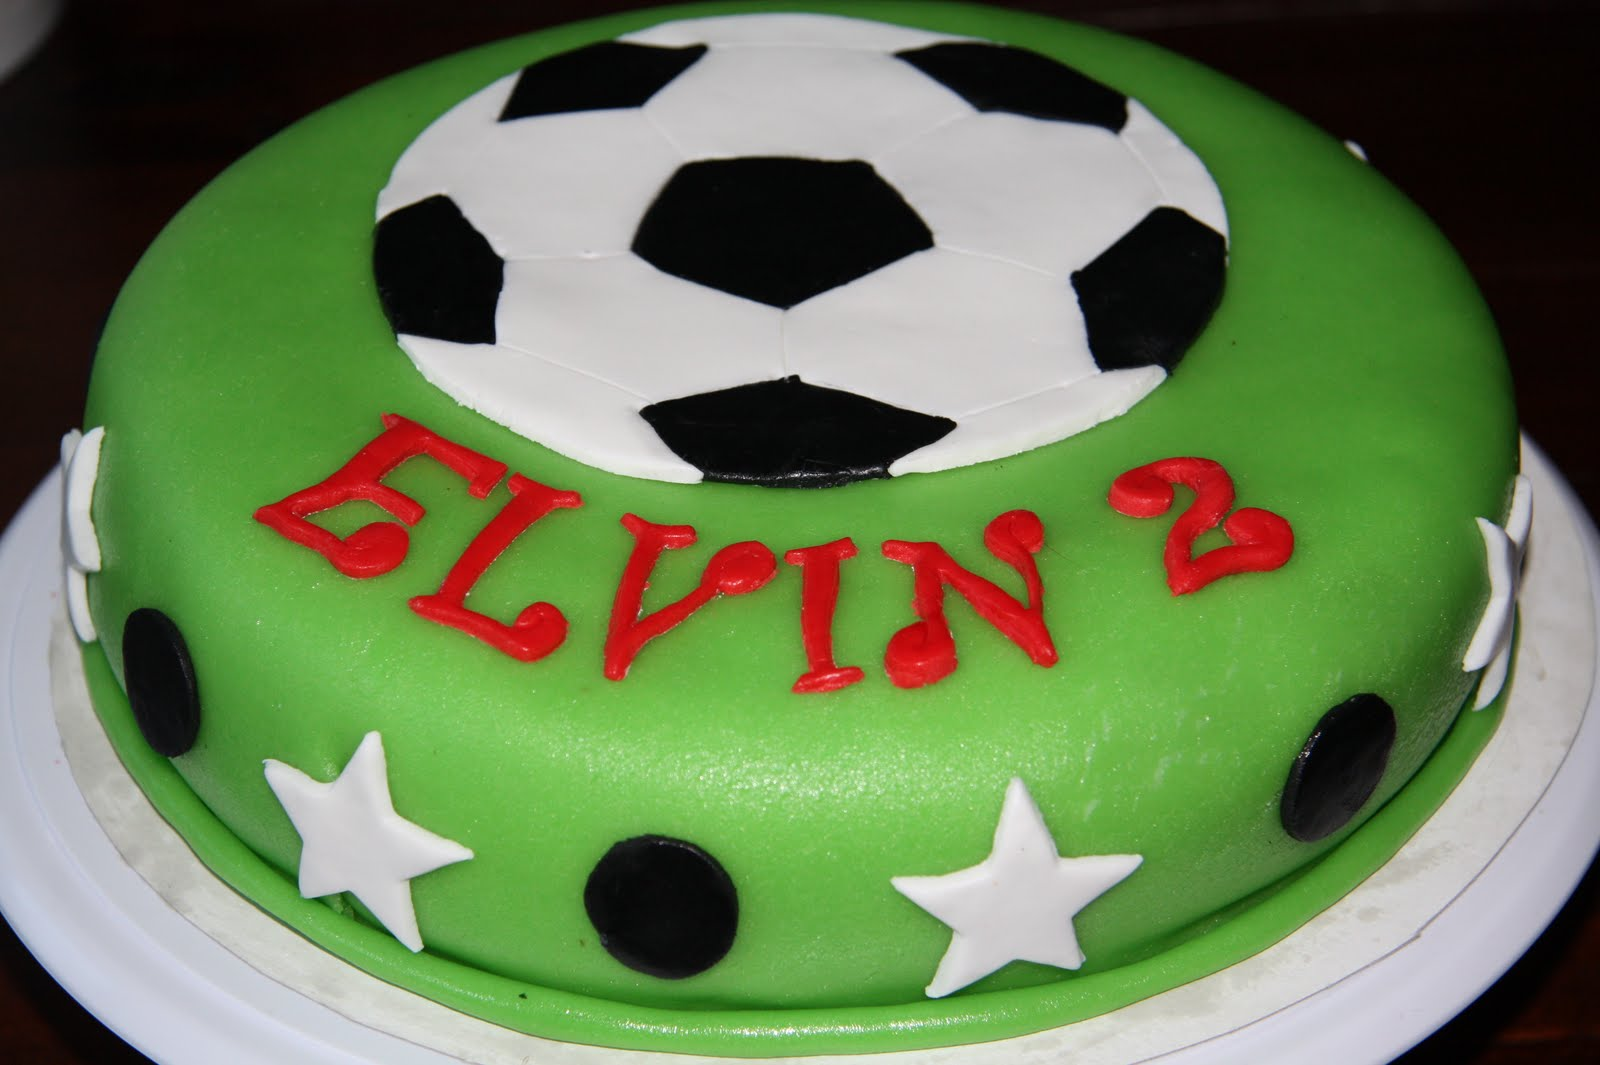 Cake Decorating Ideas For Soccer : The Cake Booth: Soccer birthday cake